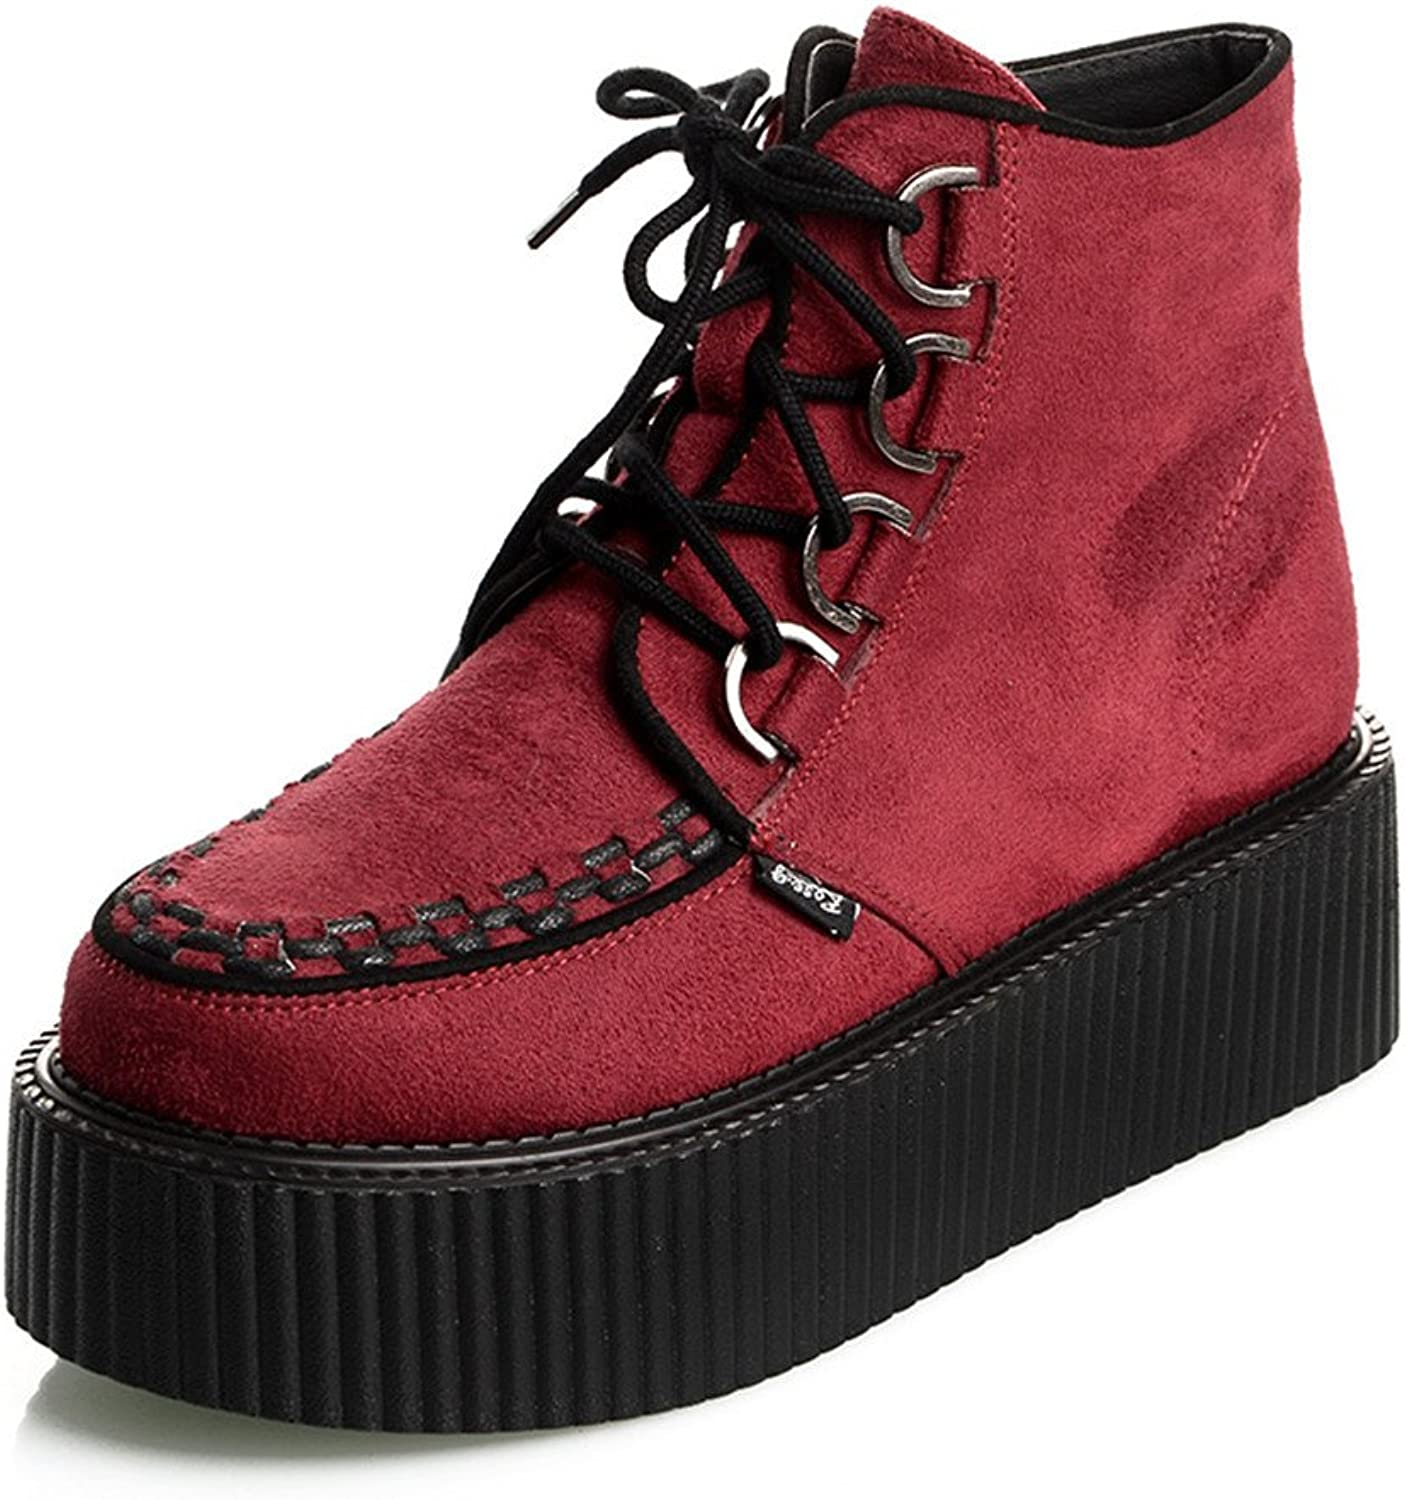 pinkG New Lace Up Suede High Top Flats Platform Creepers Boots